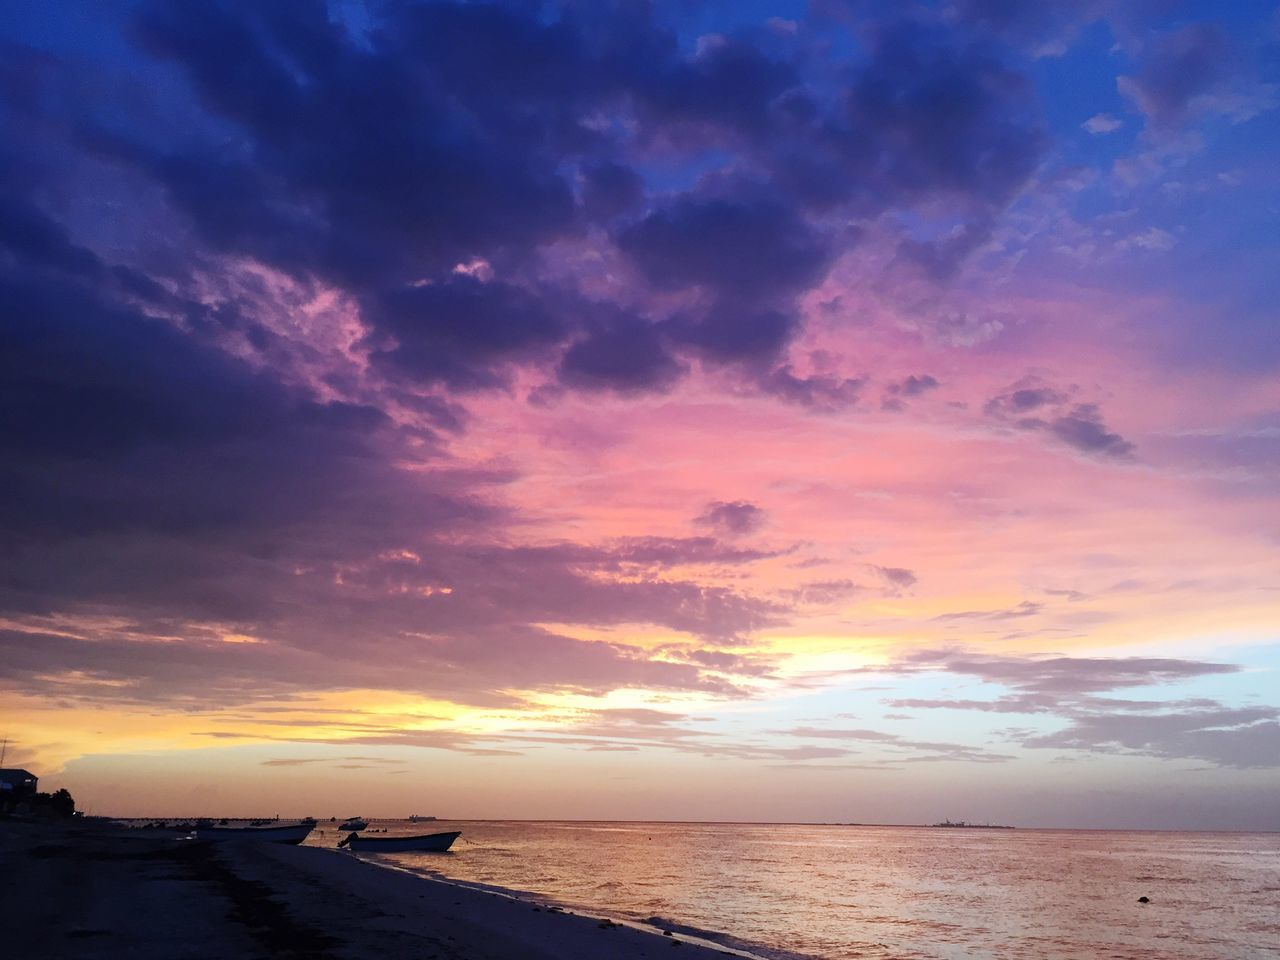 Sea Sunset Sky Water Beauty In Nature Scenics Nature Horizon Over Water Cloud - Sky Tranquil Scene Beach Tranquility Outdoors No People Silhouette Yucatan Mexico Atardecer Mexico Scenery